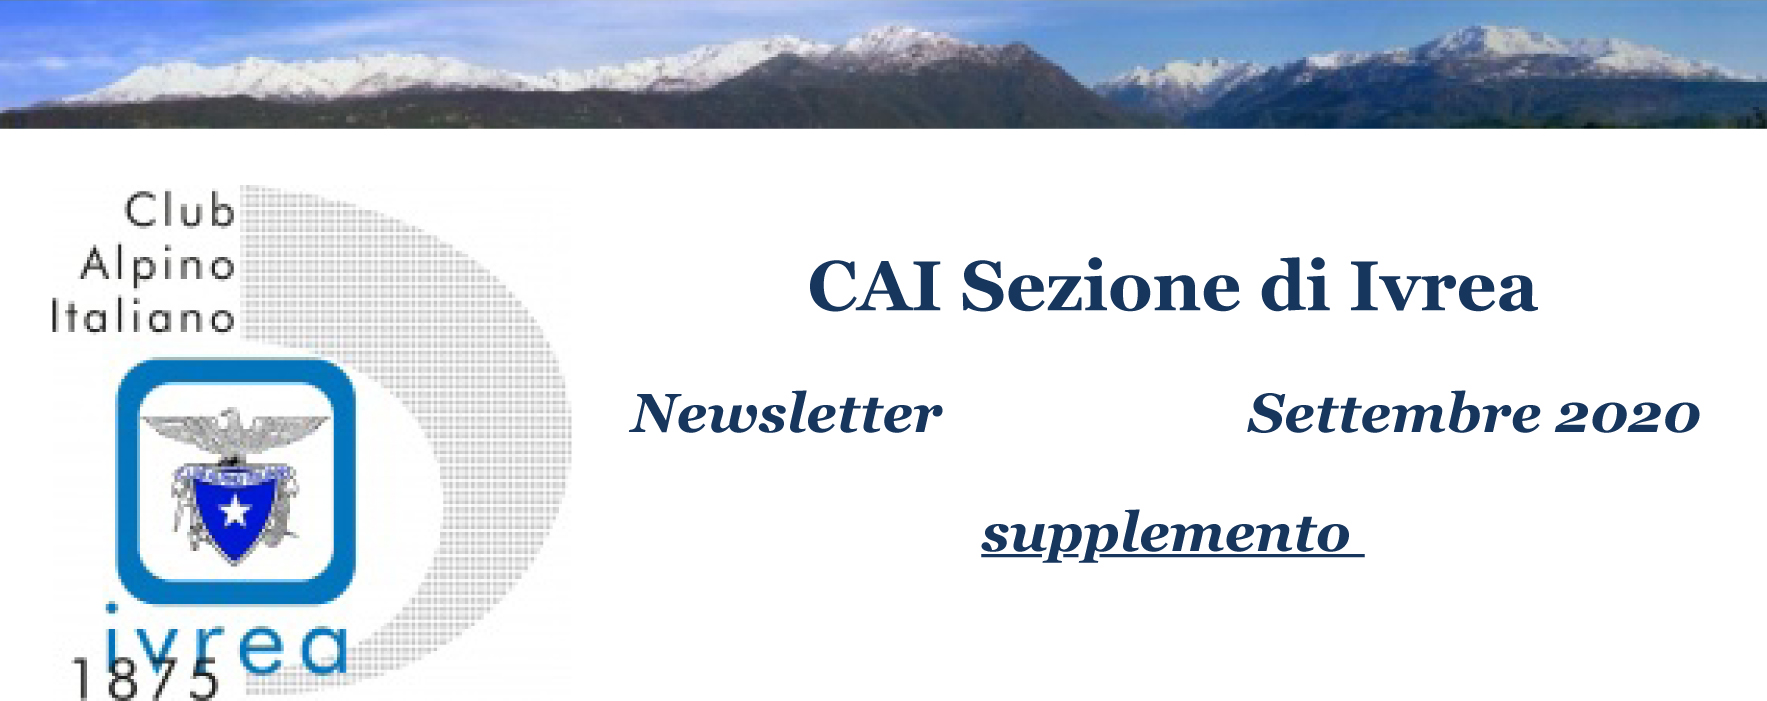 CAI_Ivrea_-_Newsletter_settembre_2020_-_supplemento-1.jpg